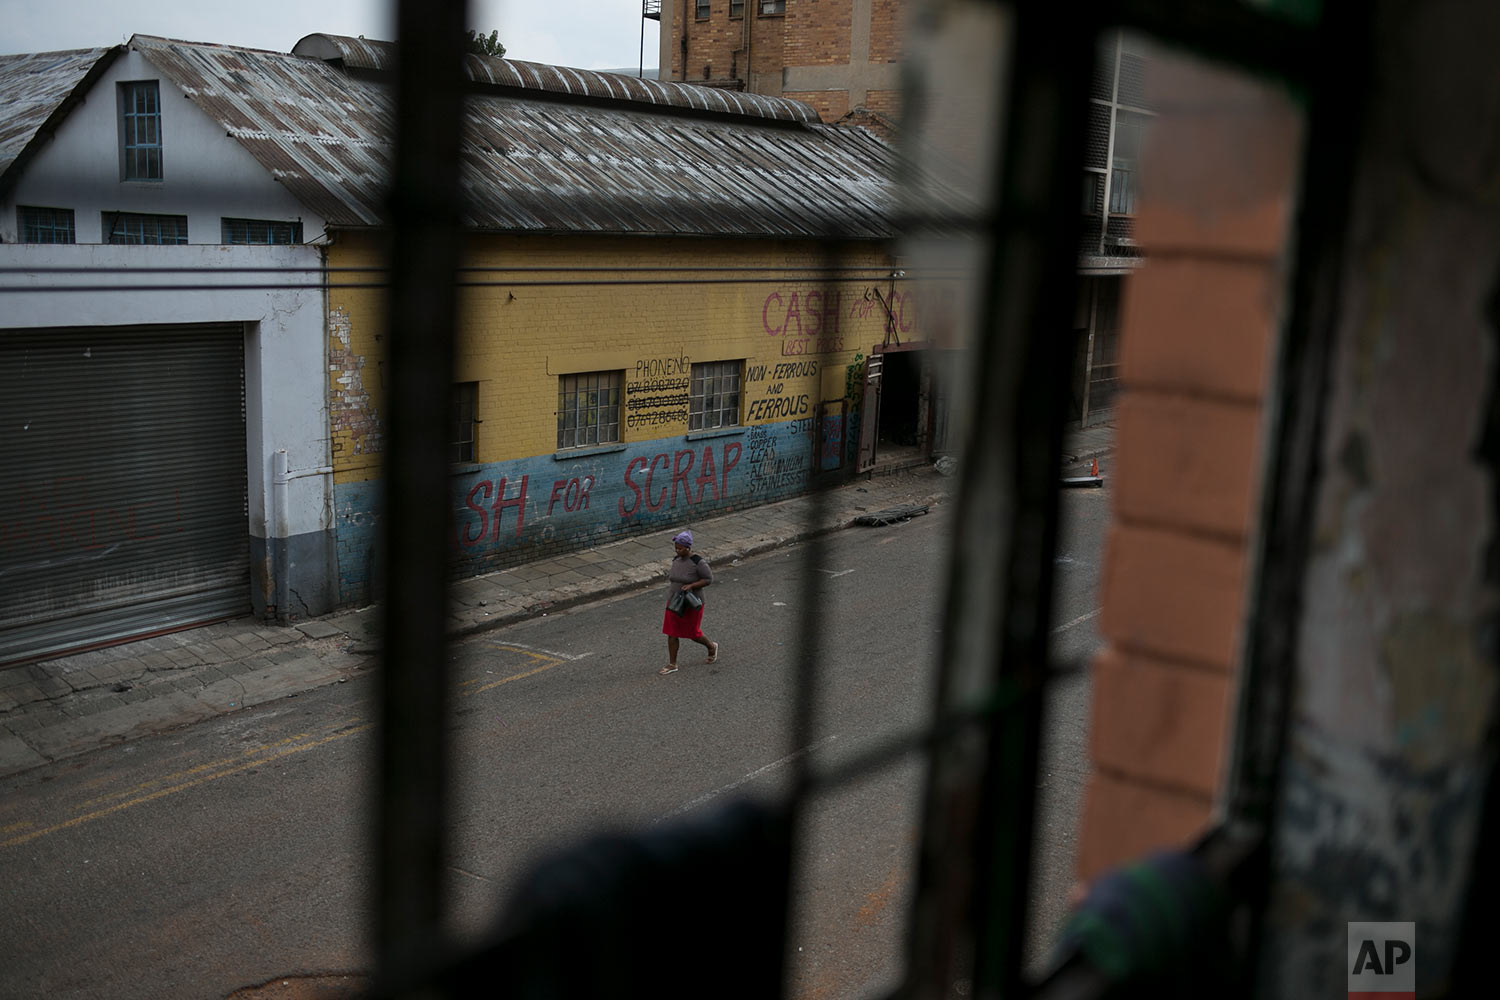 A woman walks past an abandoned building occupied by squatters. March 30, 2018. (AP Photo/Bram Janssen)